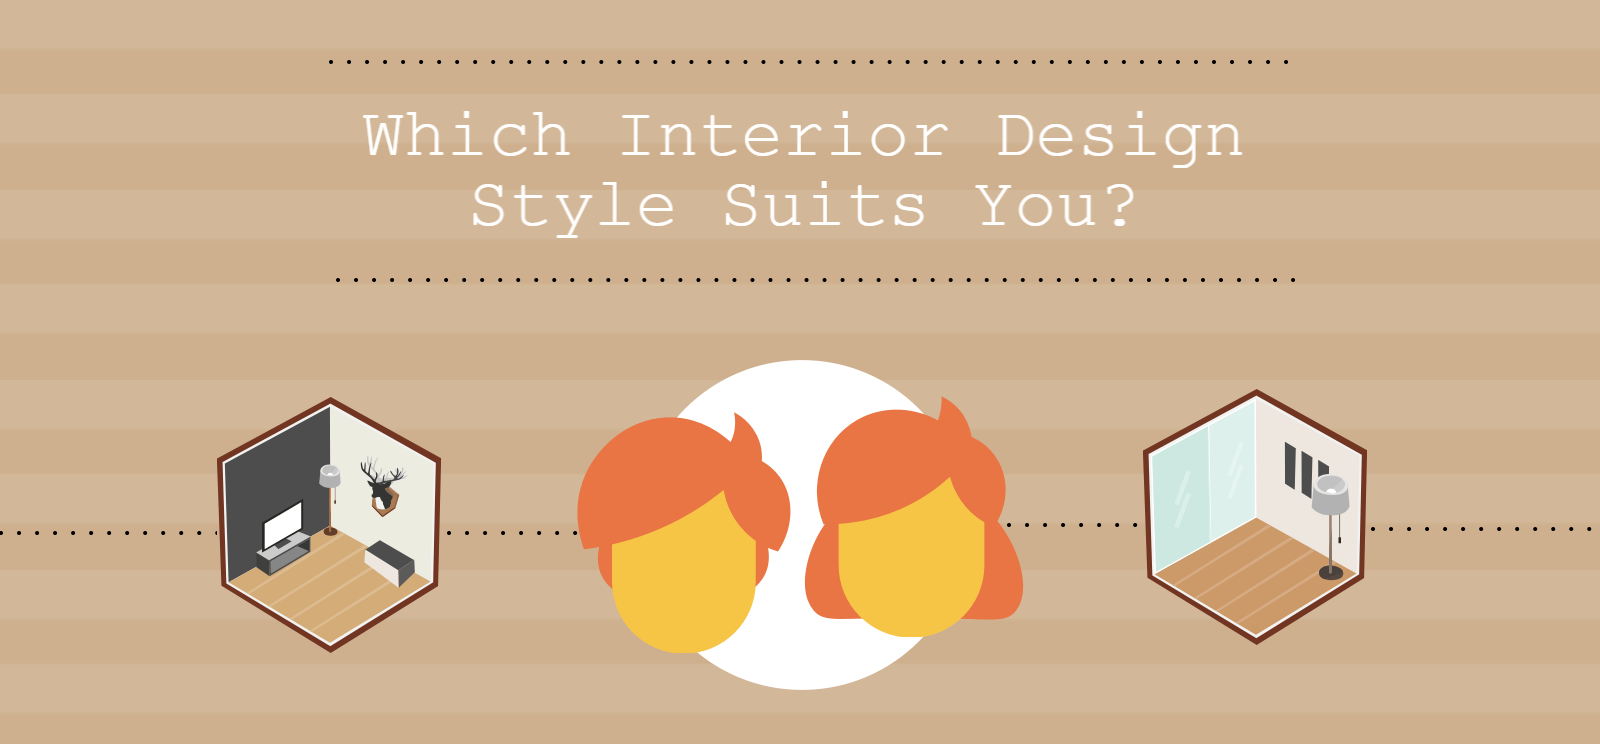 interior design personality quiz